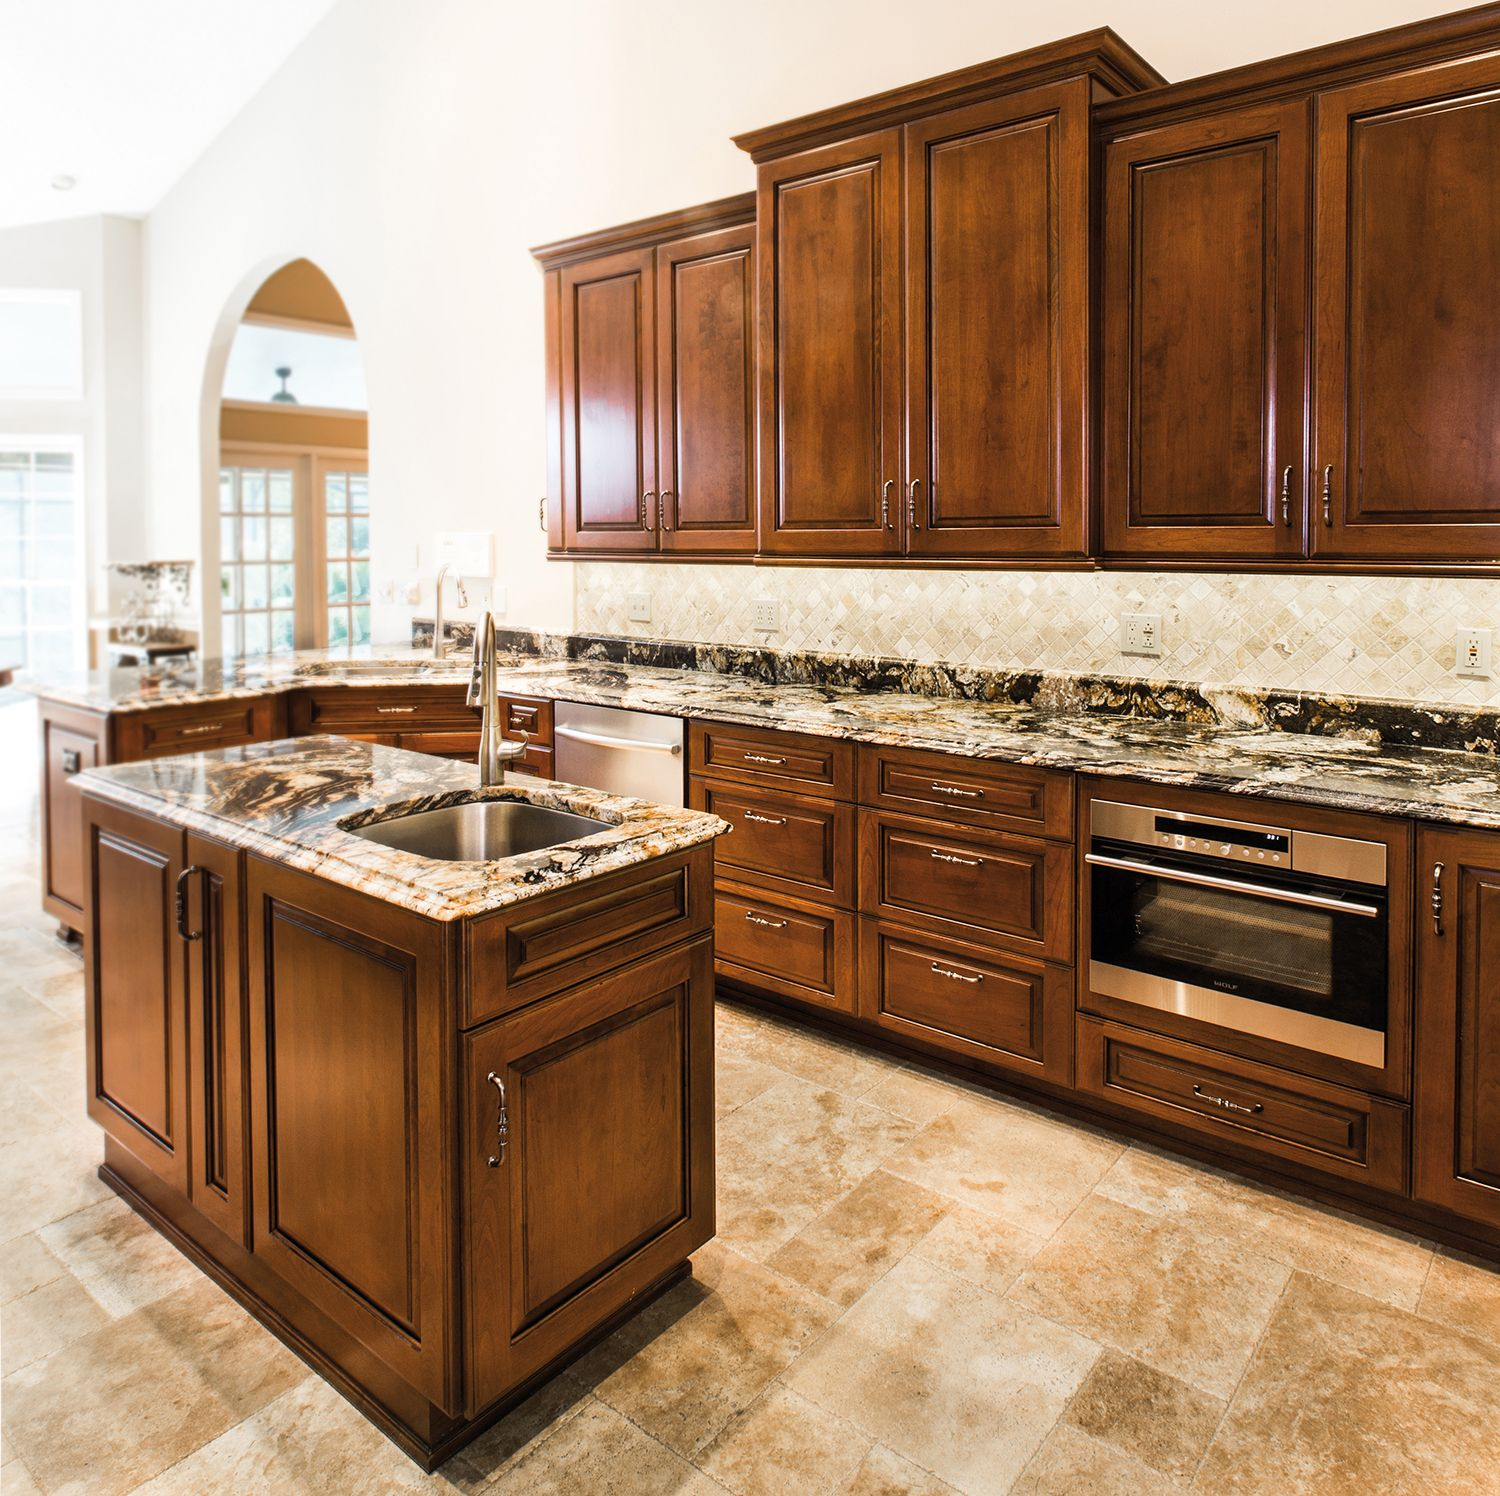 Zeljko Designed This Traditional Kitchen Using Cherry Wood In A  Chestnut/Antique Black Glaze With Door Dealer: Zelmar Designs Part 89